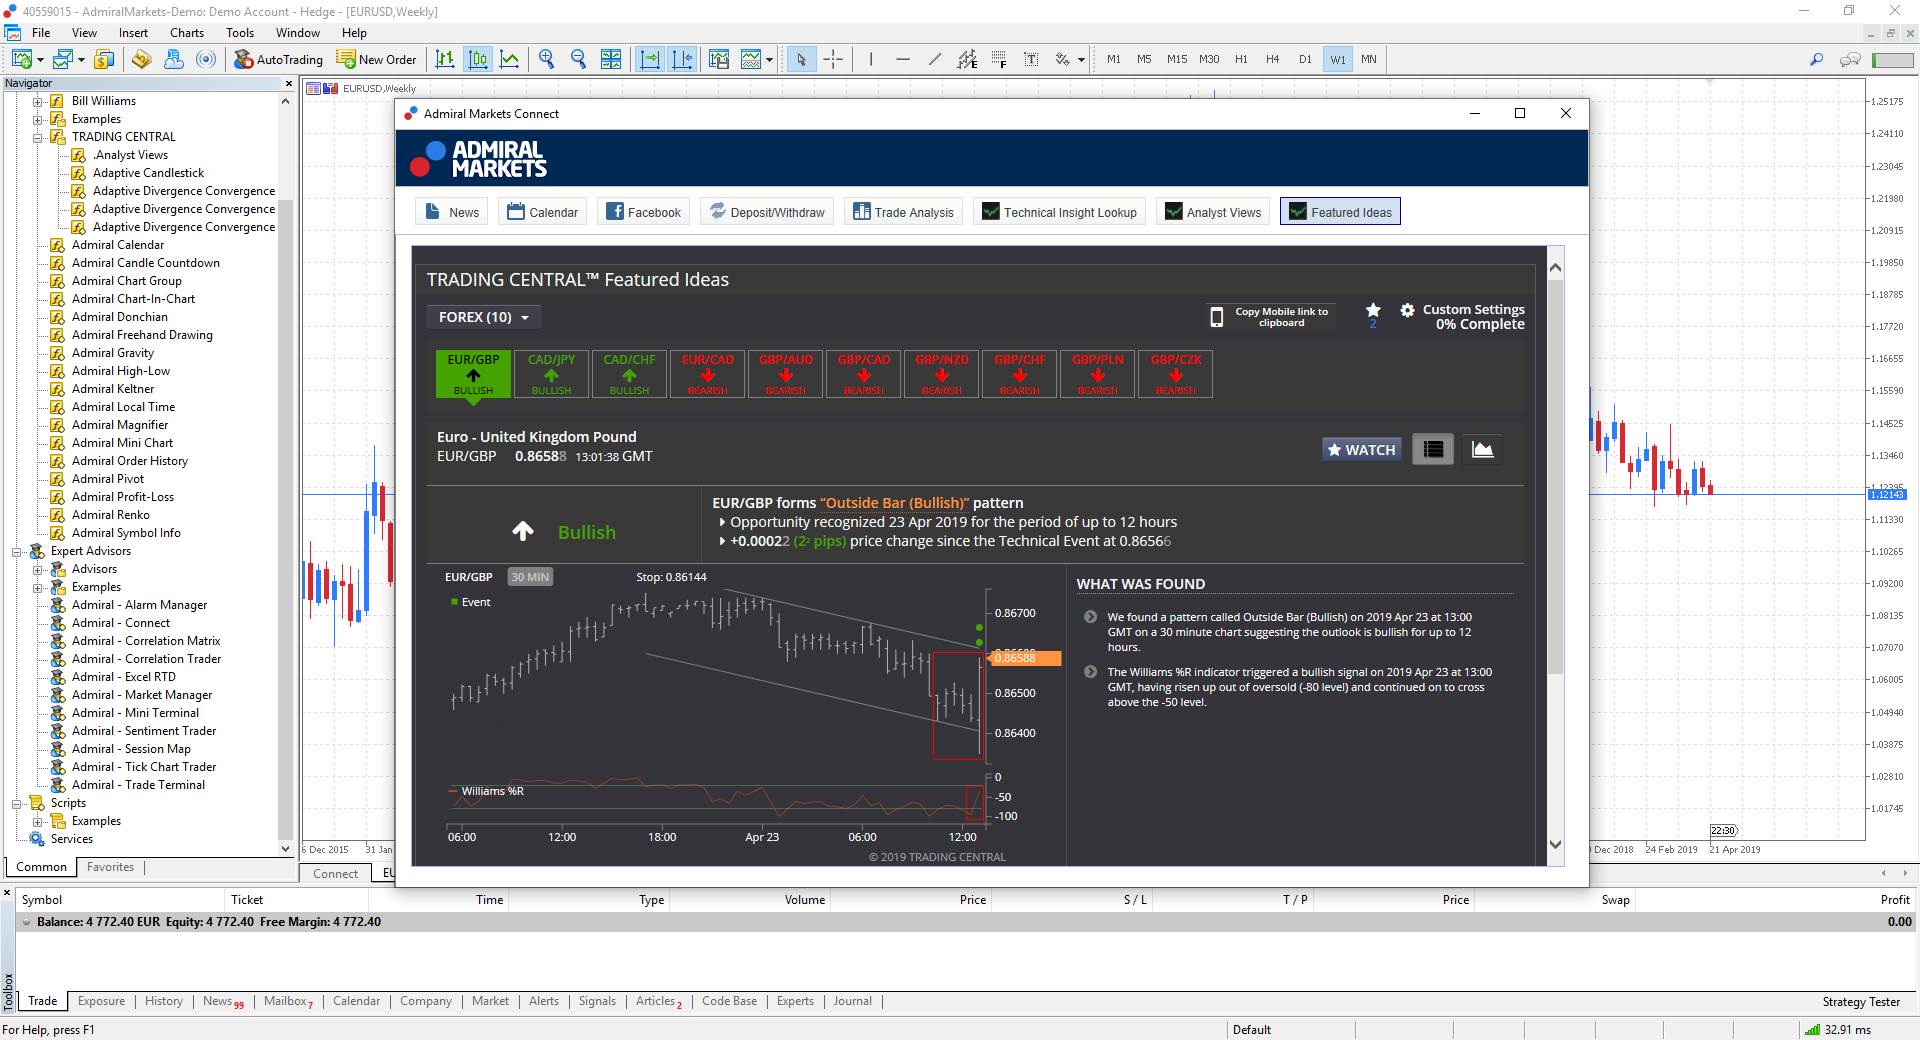 Forex Featured Ideas window